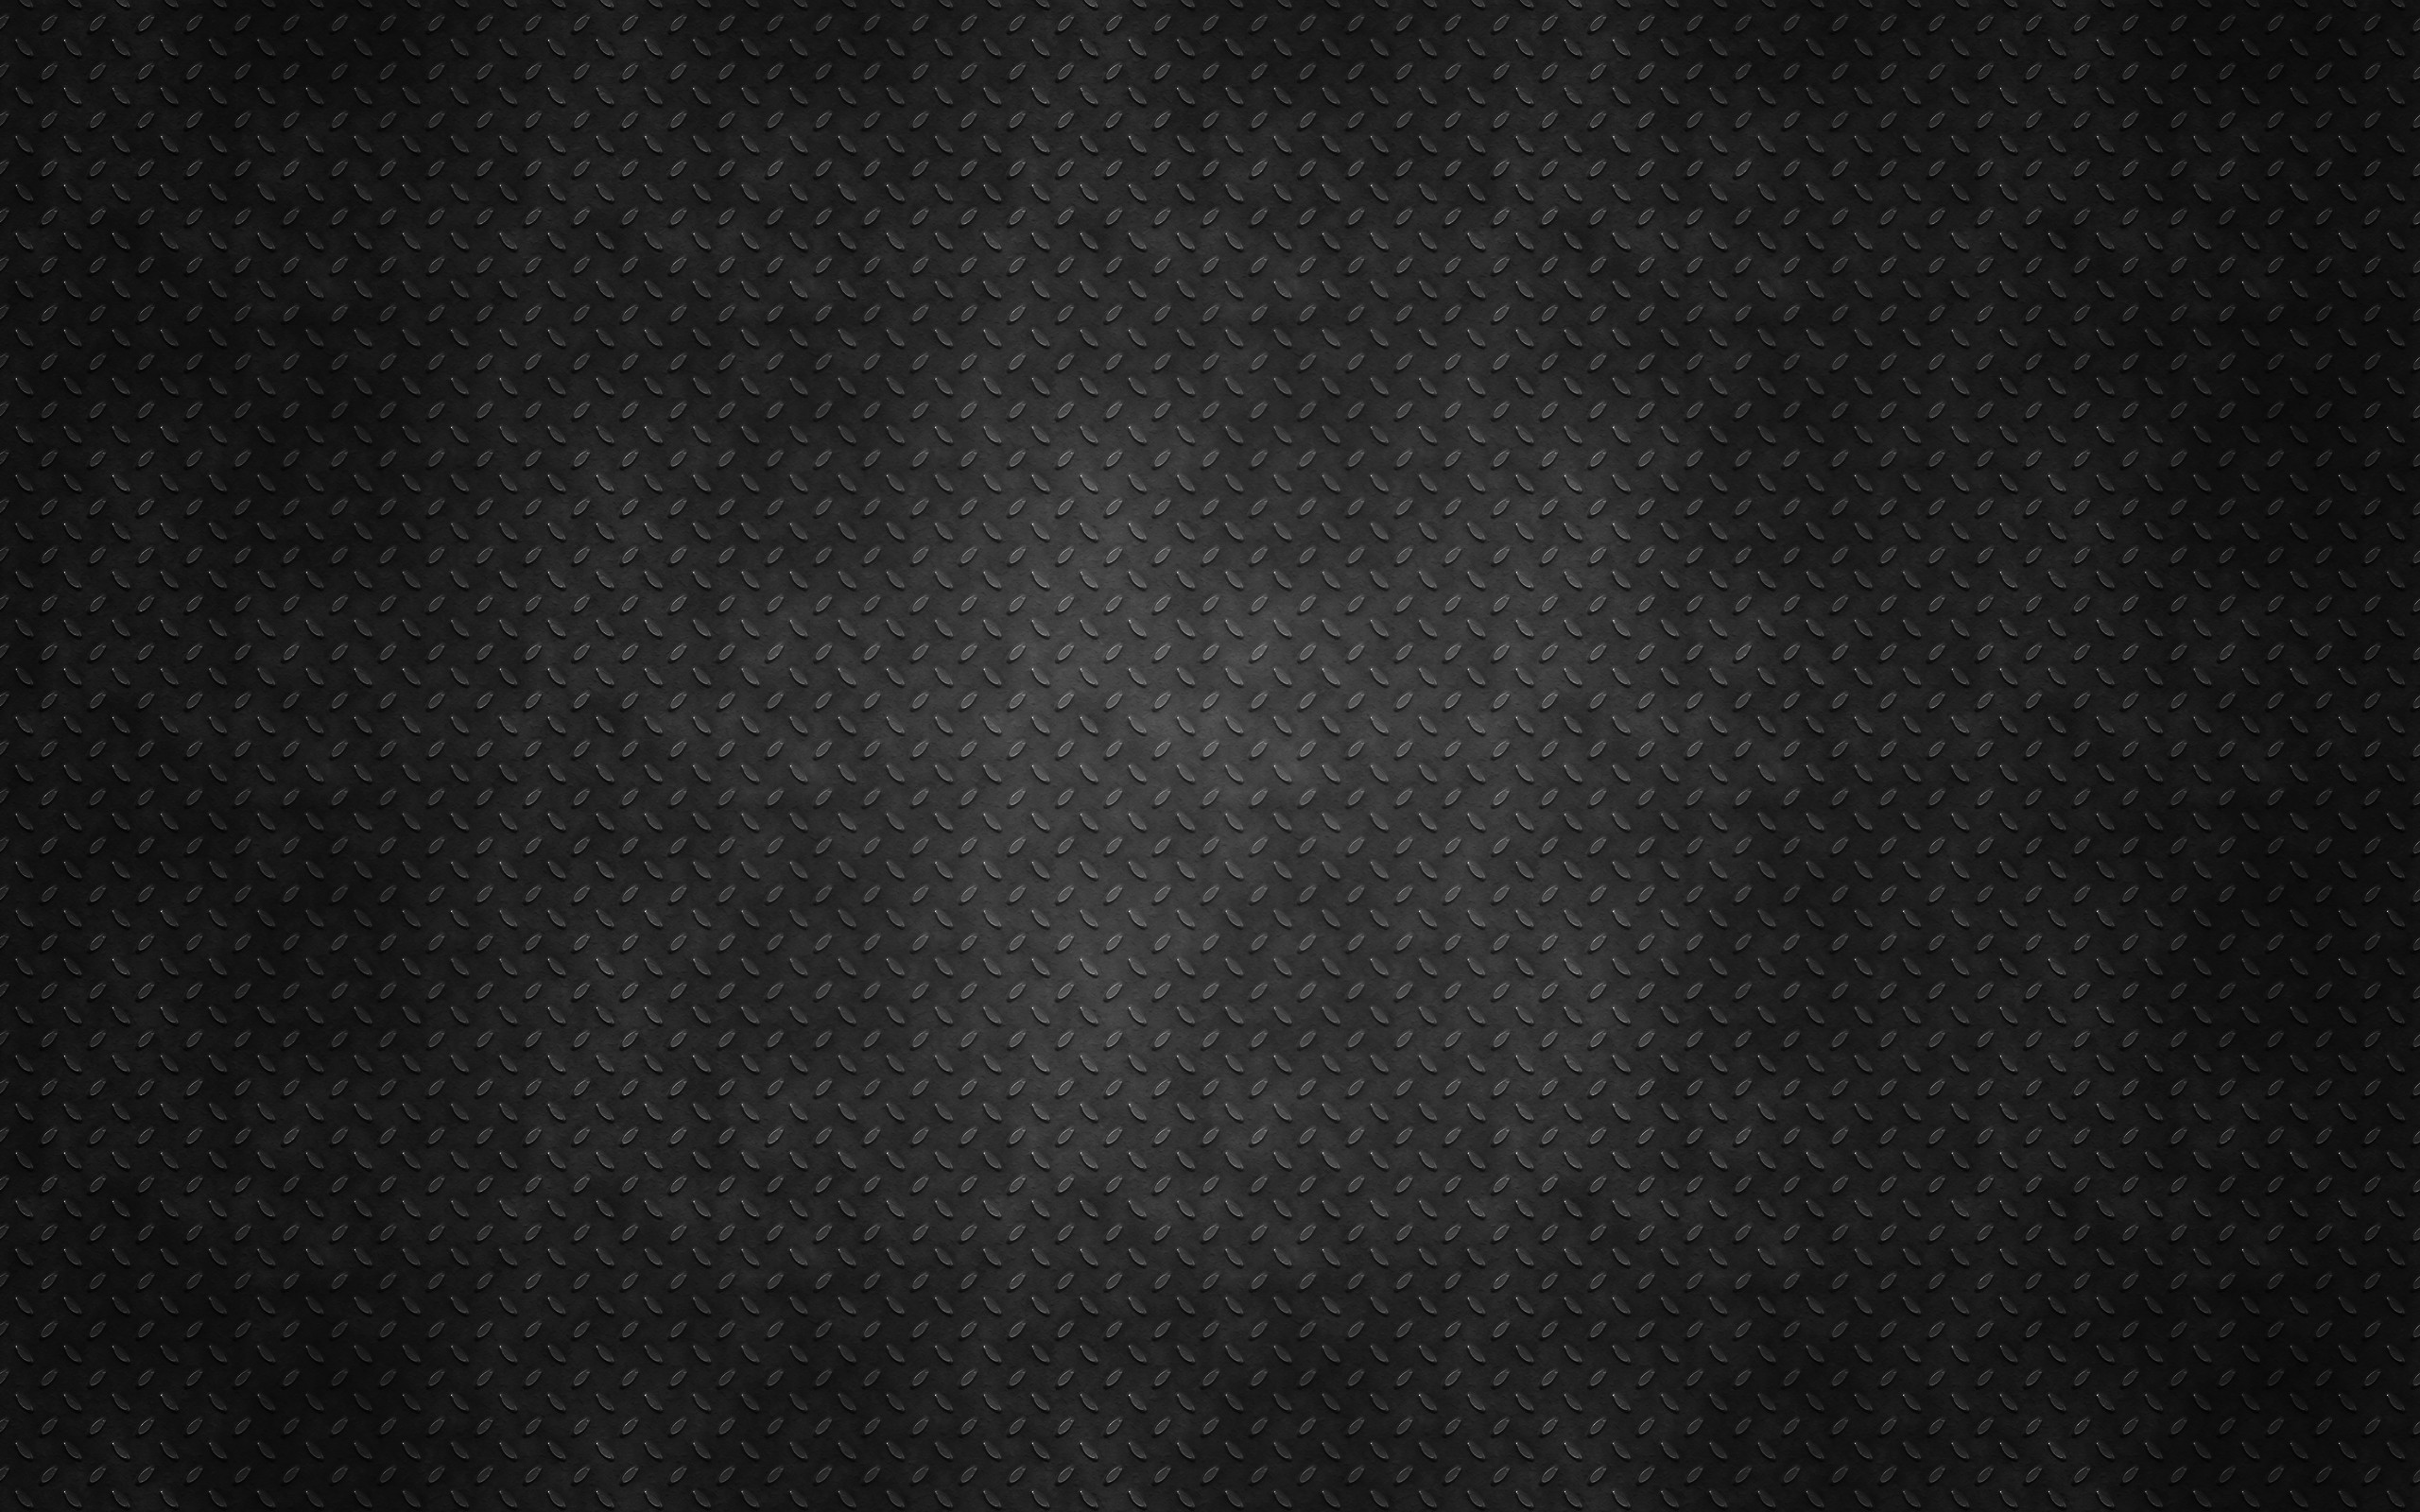 texture metal background black wallpaper wallpapers #3779